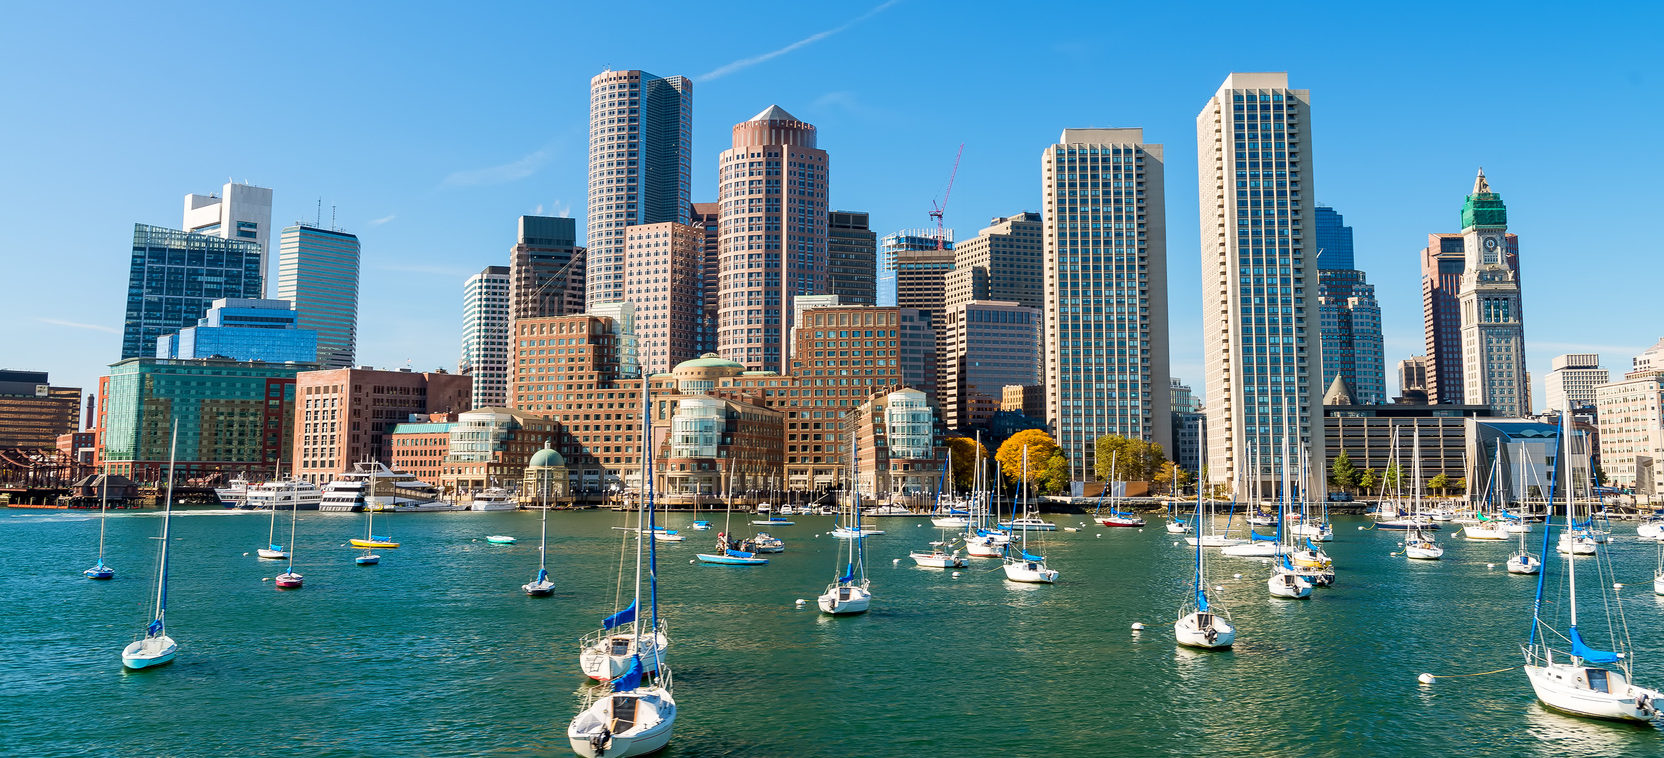 Boston, Massachusetts. Beautiful City Skyline.